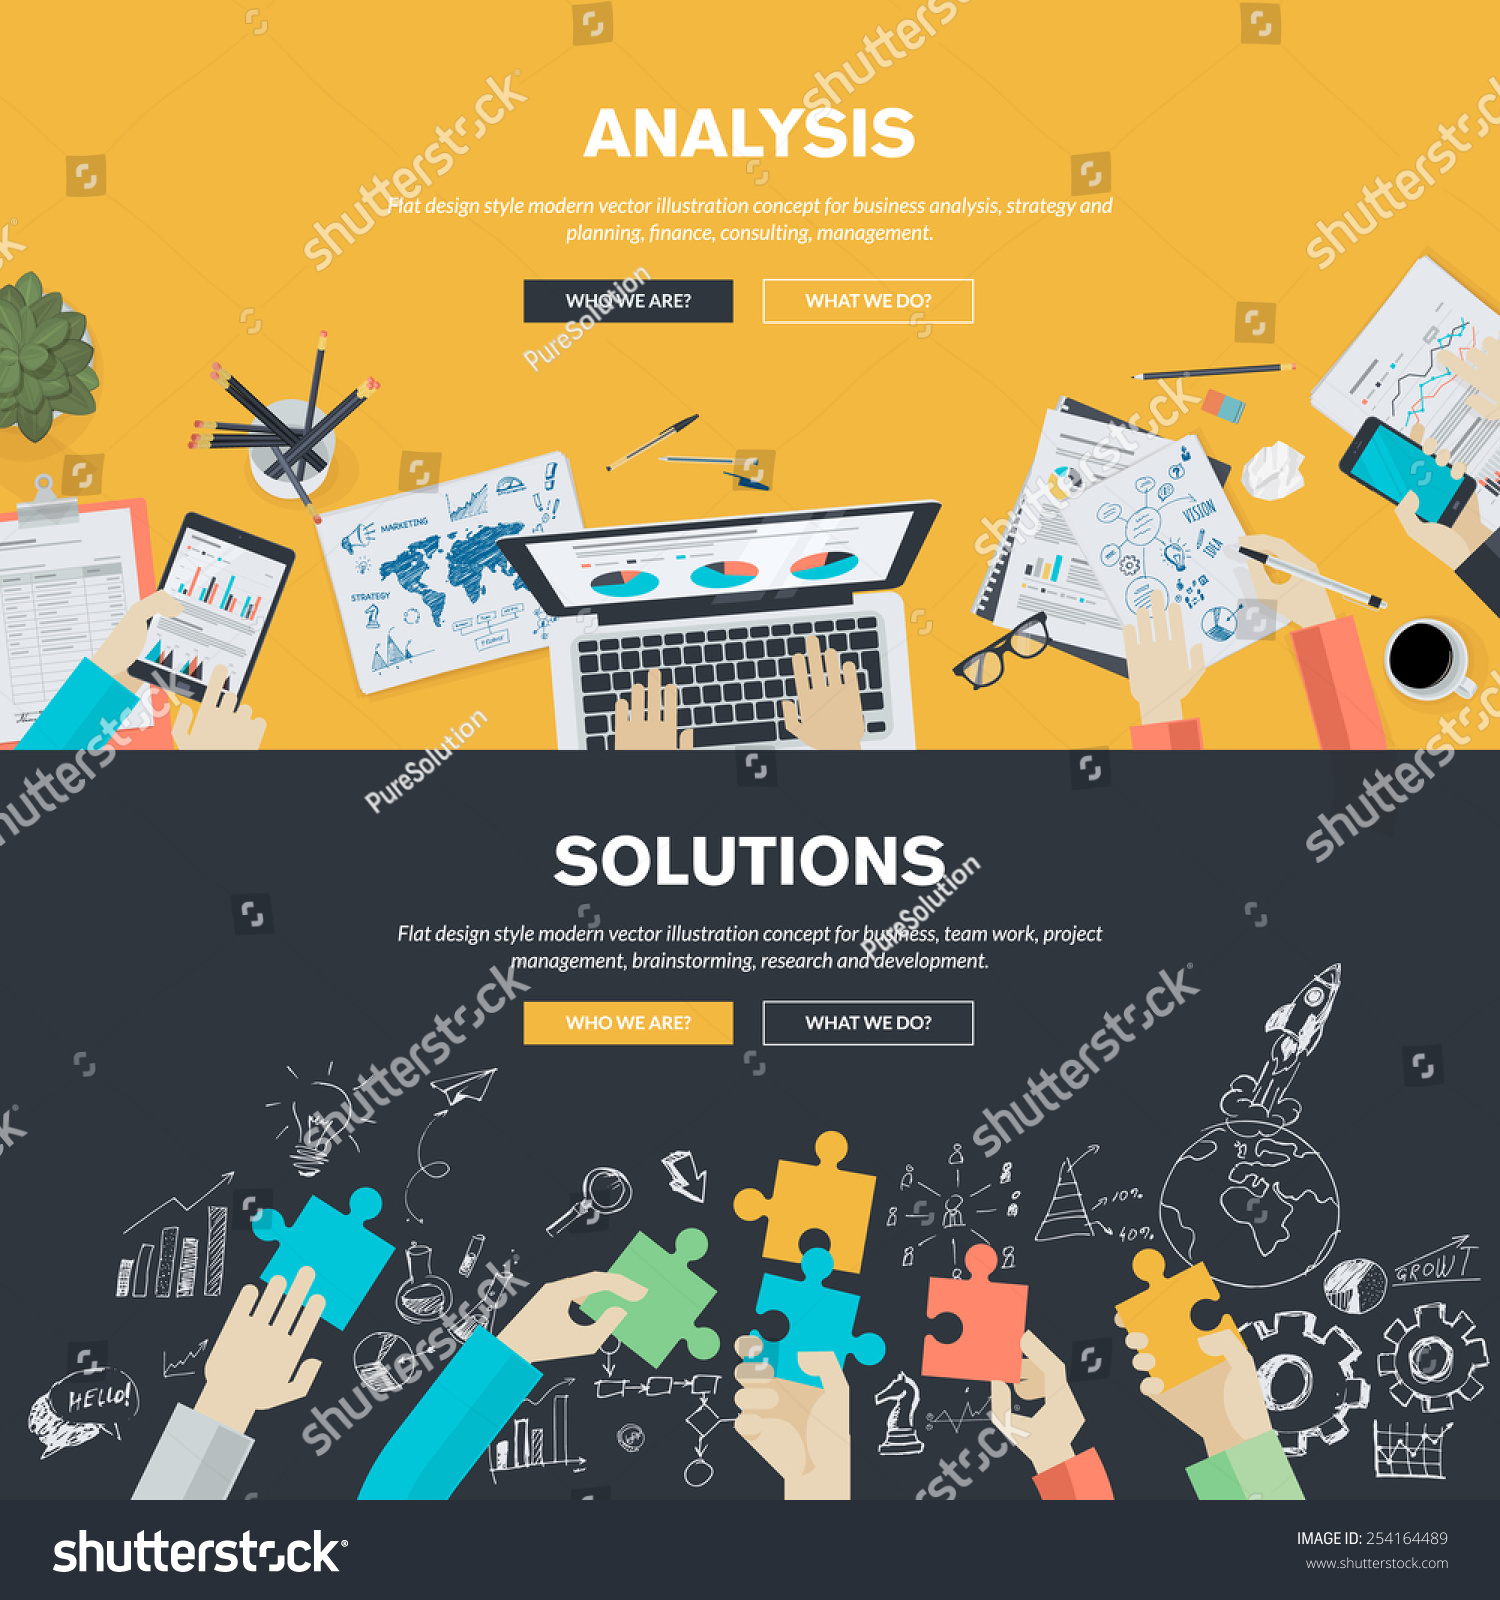 Flat design illustration concepts business analysis stock for Design and development consultants